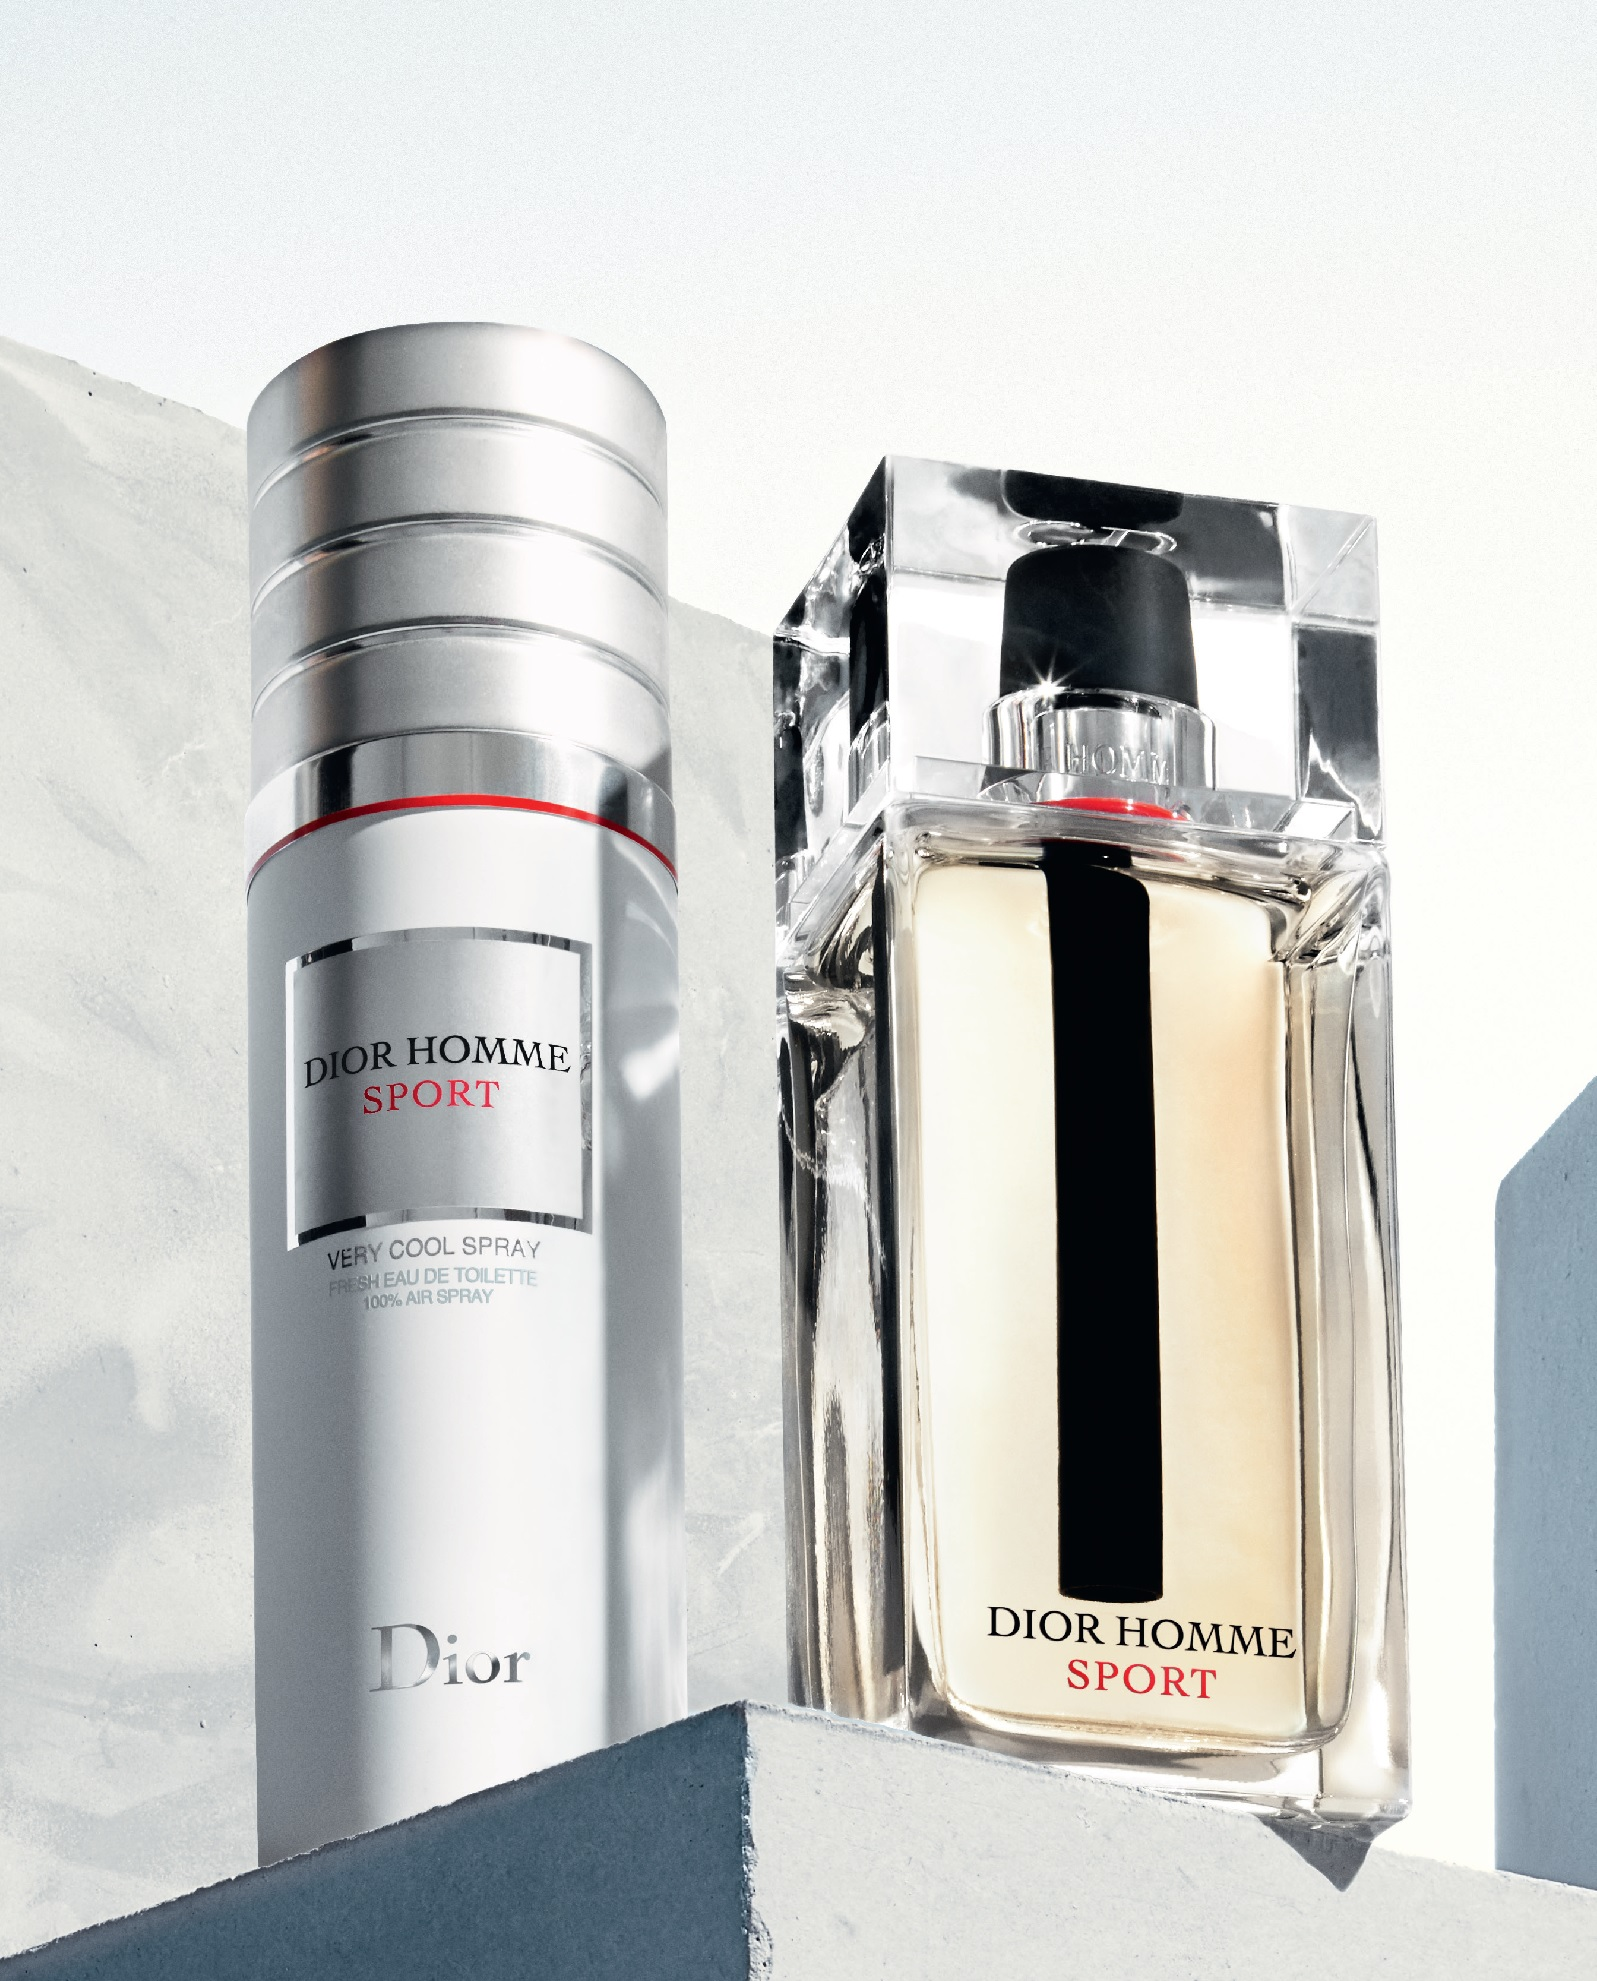 Dior Homme Sport Very Cool Spray New Fragrances